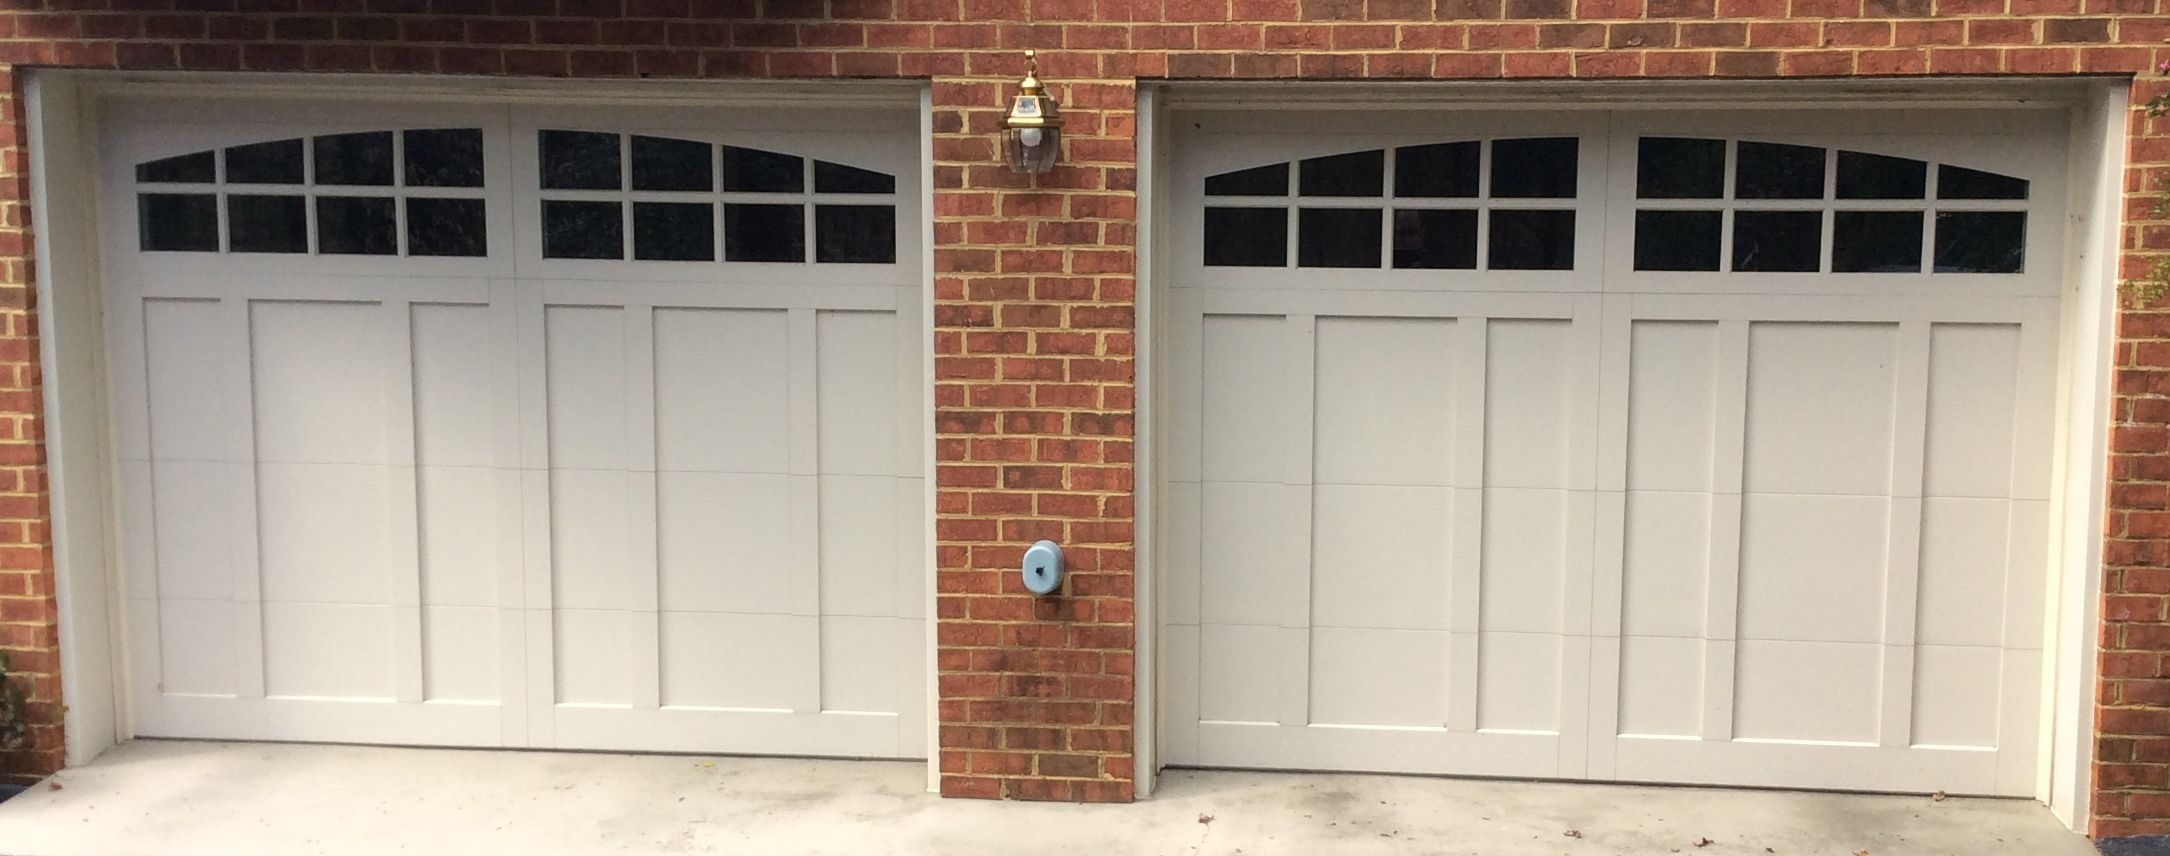 Two 9x7 Model 5632a Almond Garage Doors With Arched Stockton Glass Installed By The Richmond Store House Exterior Garage Doors Doors